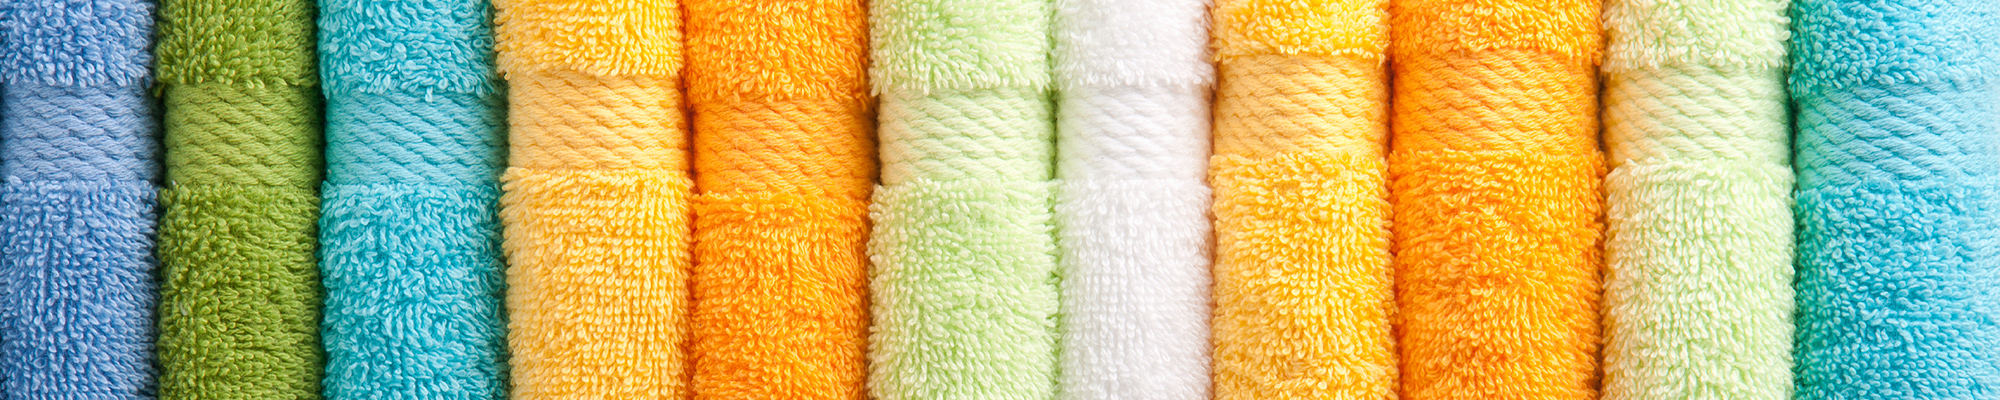 colorful towels textile products